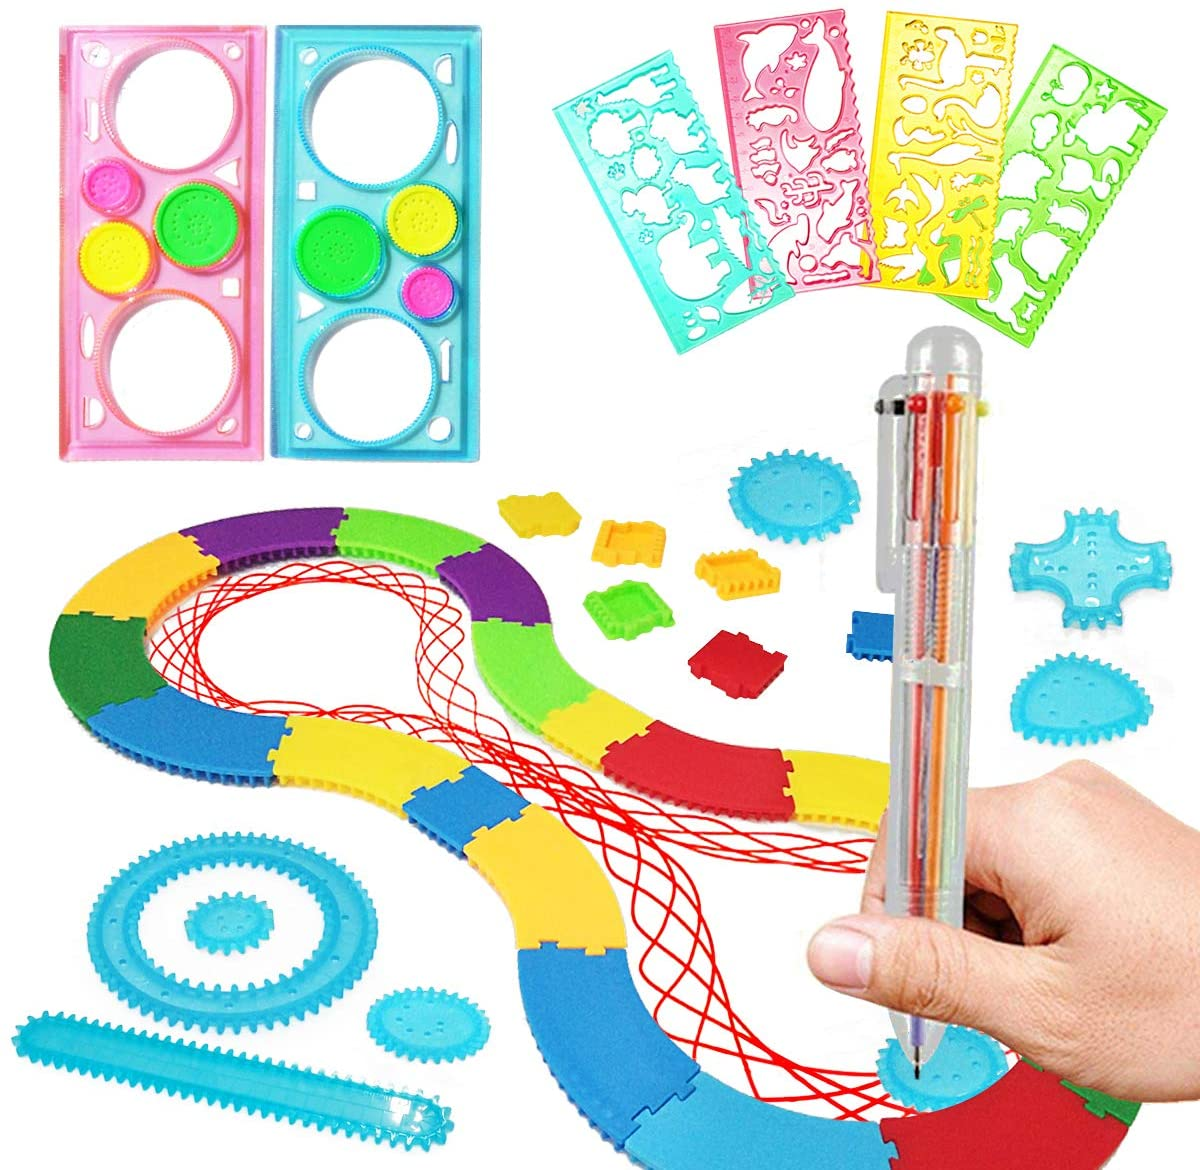 MIMIDOU Spiral Designer Freestyle Design Deluxe Kit, kids drawing aid art design stencil set include multicolored gel pen, spiral shapes and geometric templates 17 pcs.